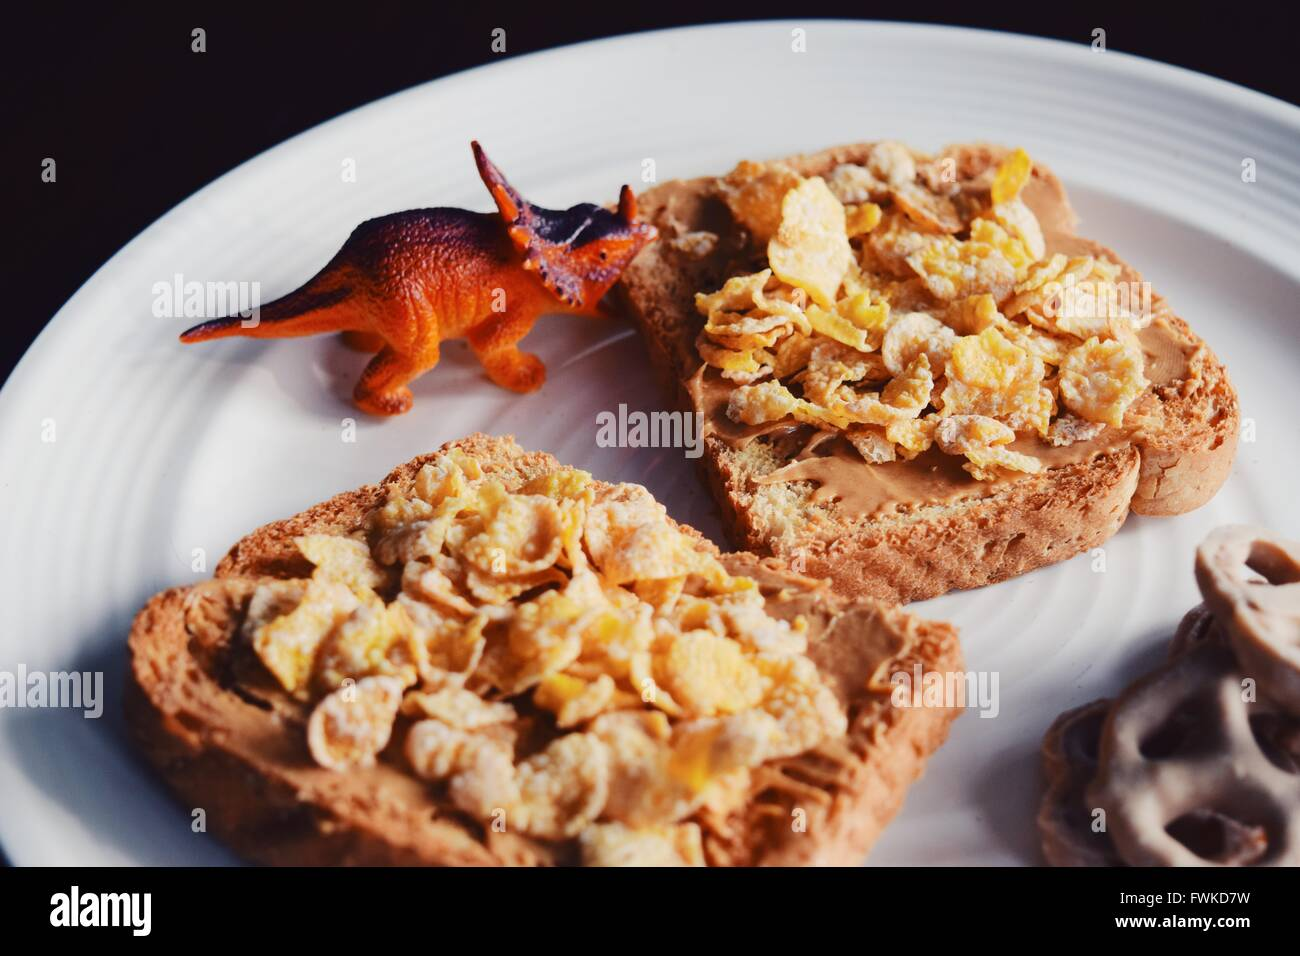 Dinosaur Toy With Breakfast Served In Plate Stock Photo